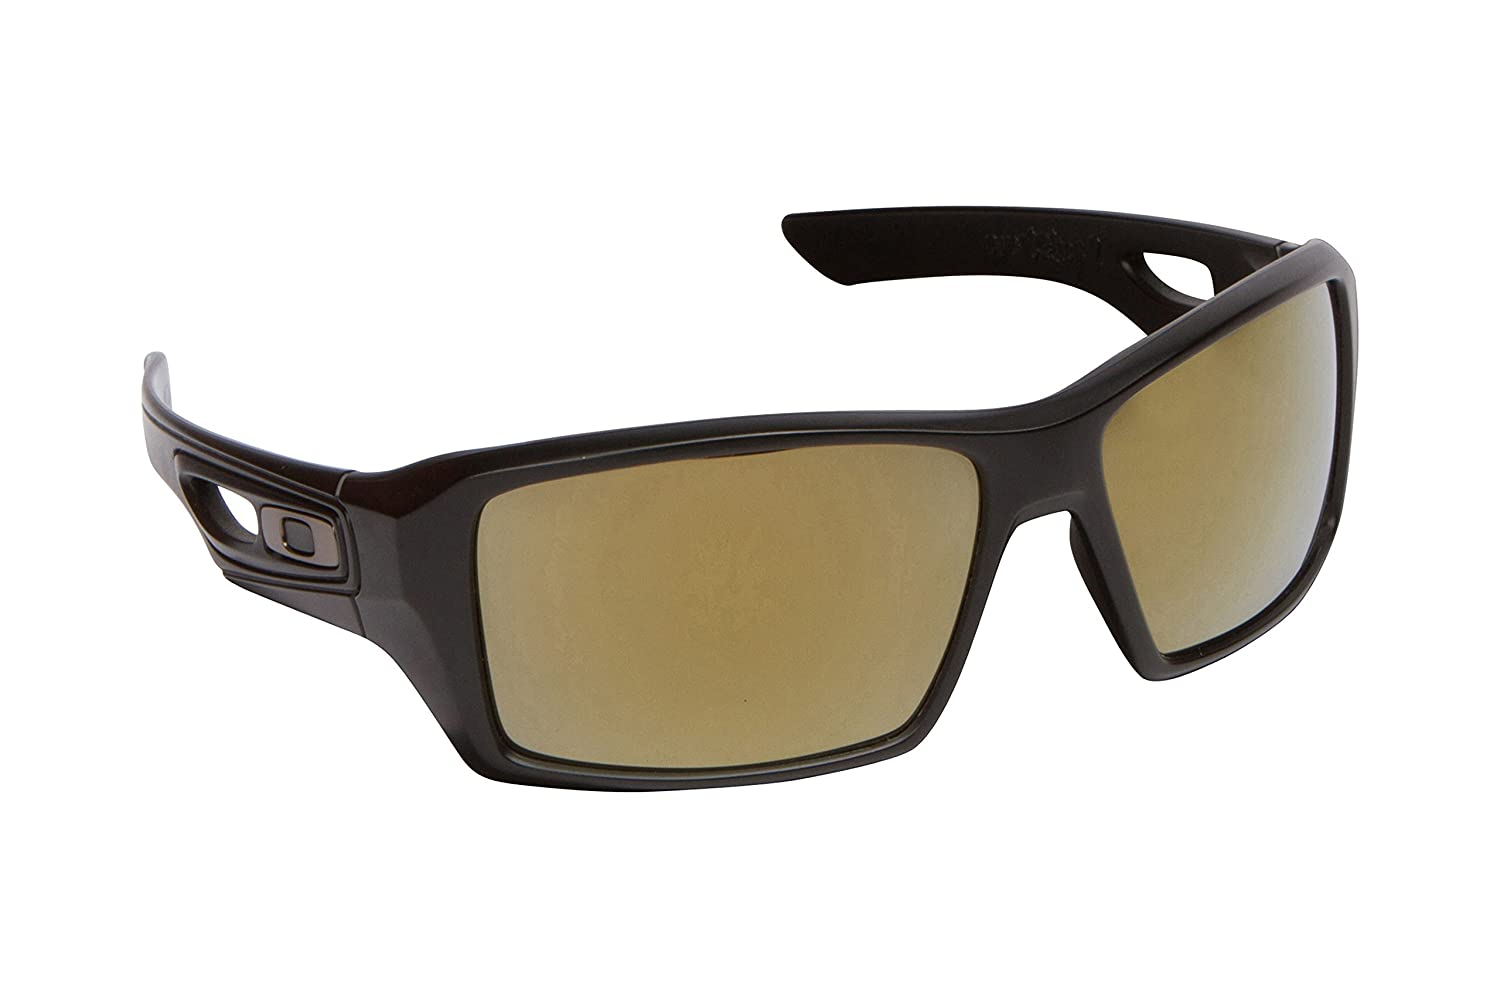 Amazon.com: Mejor Seek lentes de repuesto para Oakley ...